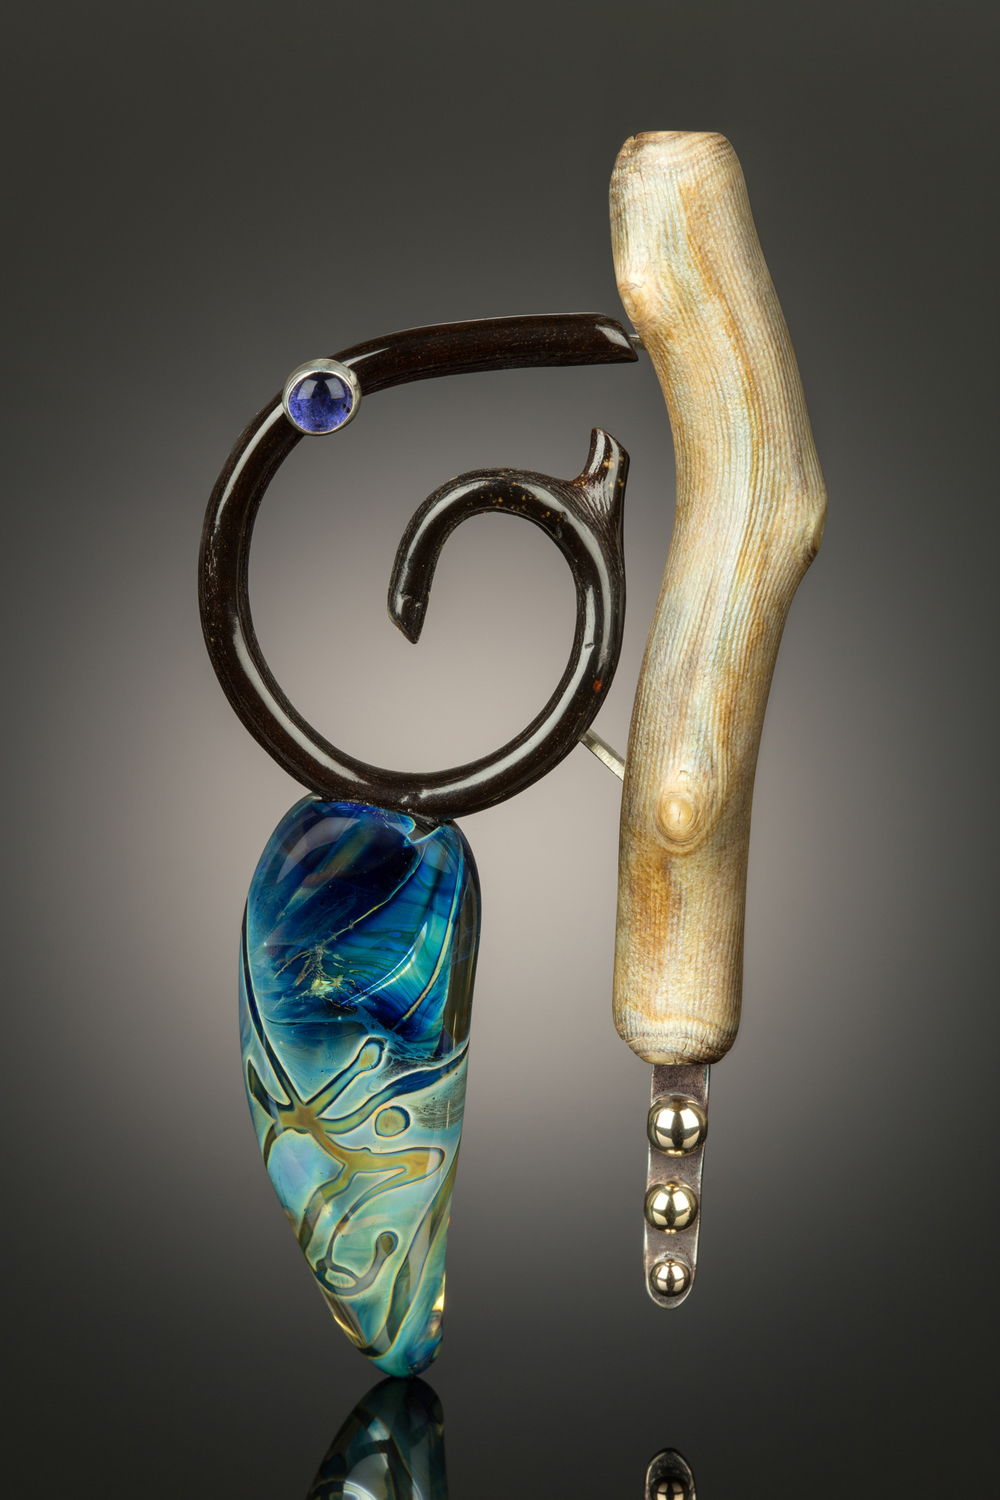 """Chaos"" brooch by Kristen Frantzen Orr and Gail Rappa was juried into the ""Hands of the Maker"" traveling exhibit by the International Society of Glass Beadmakers in 2015.  photo by David Orr."